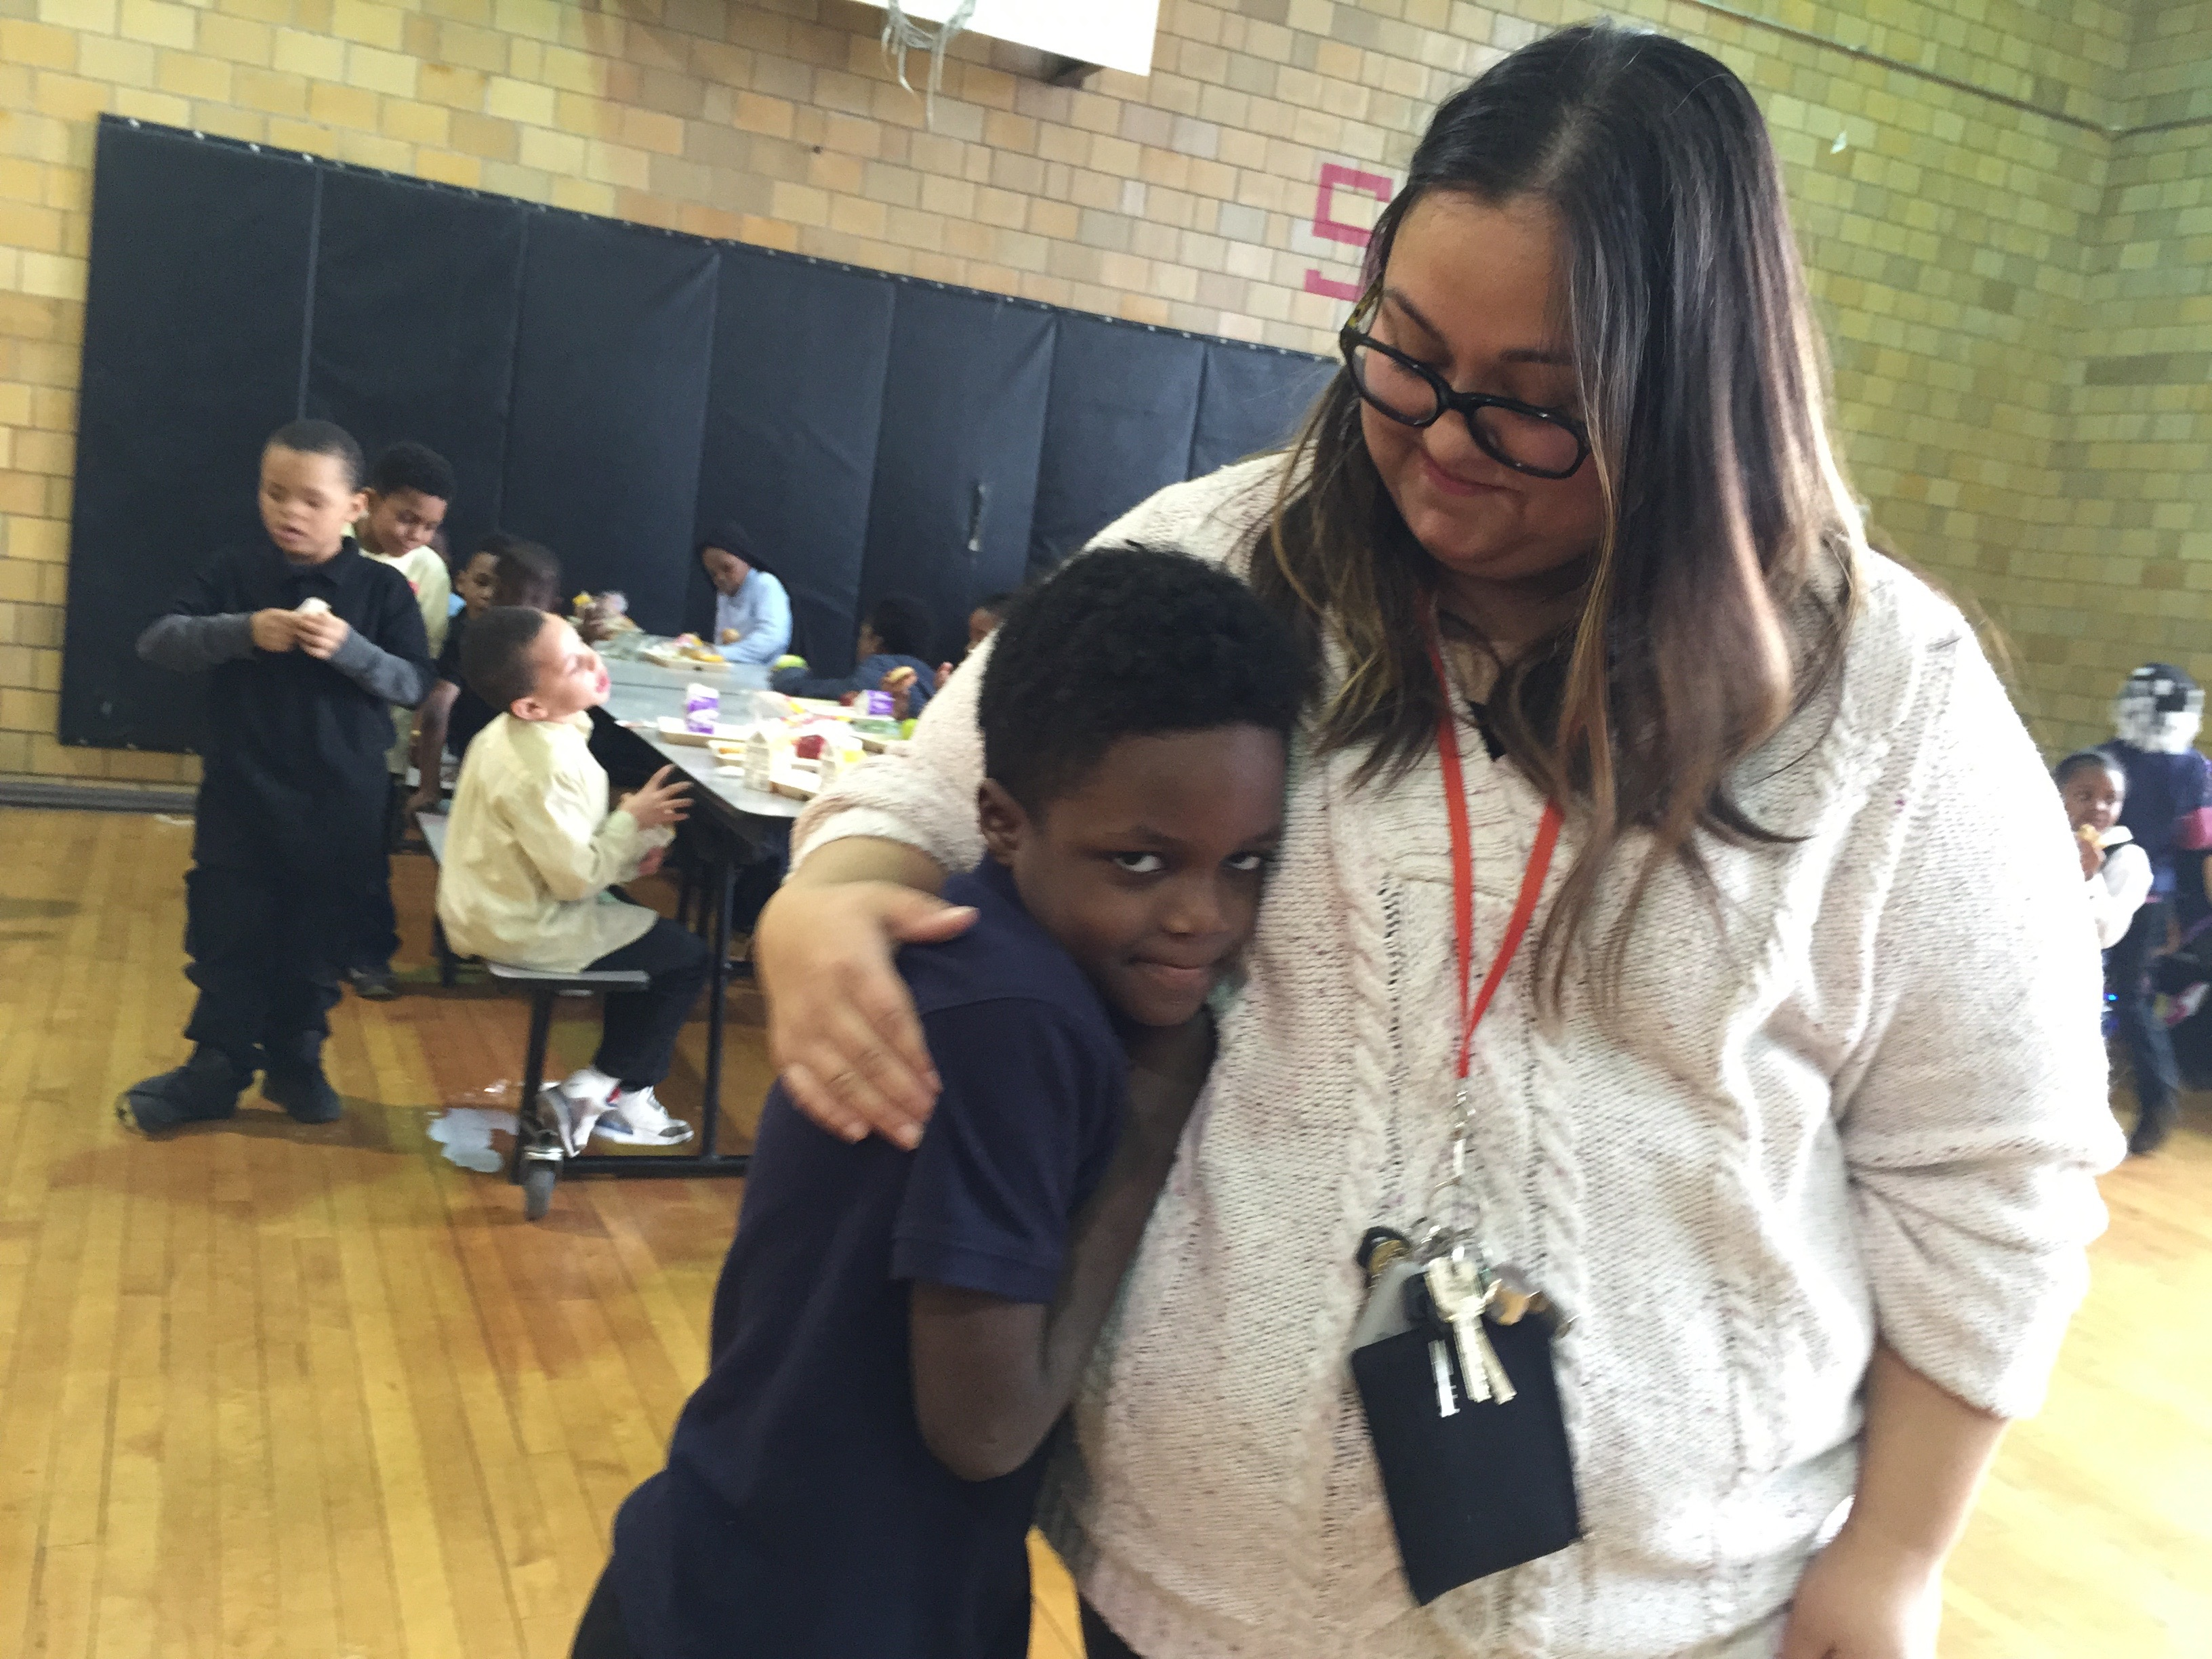 Kindergarten teacher Stefanie Kovaleski of Bethune Elementary-Middle School is one of many teachers who could take a major pay cut when her school returns next year to Detroit Public Schools Community District if she doesn't get credit for her years of experience.